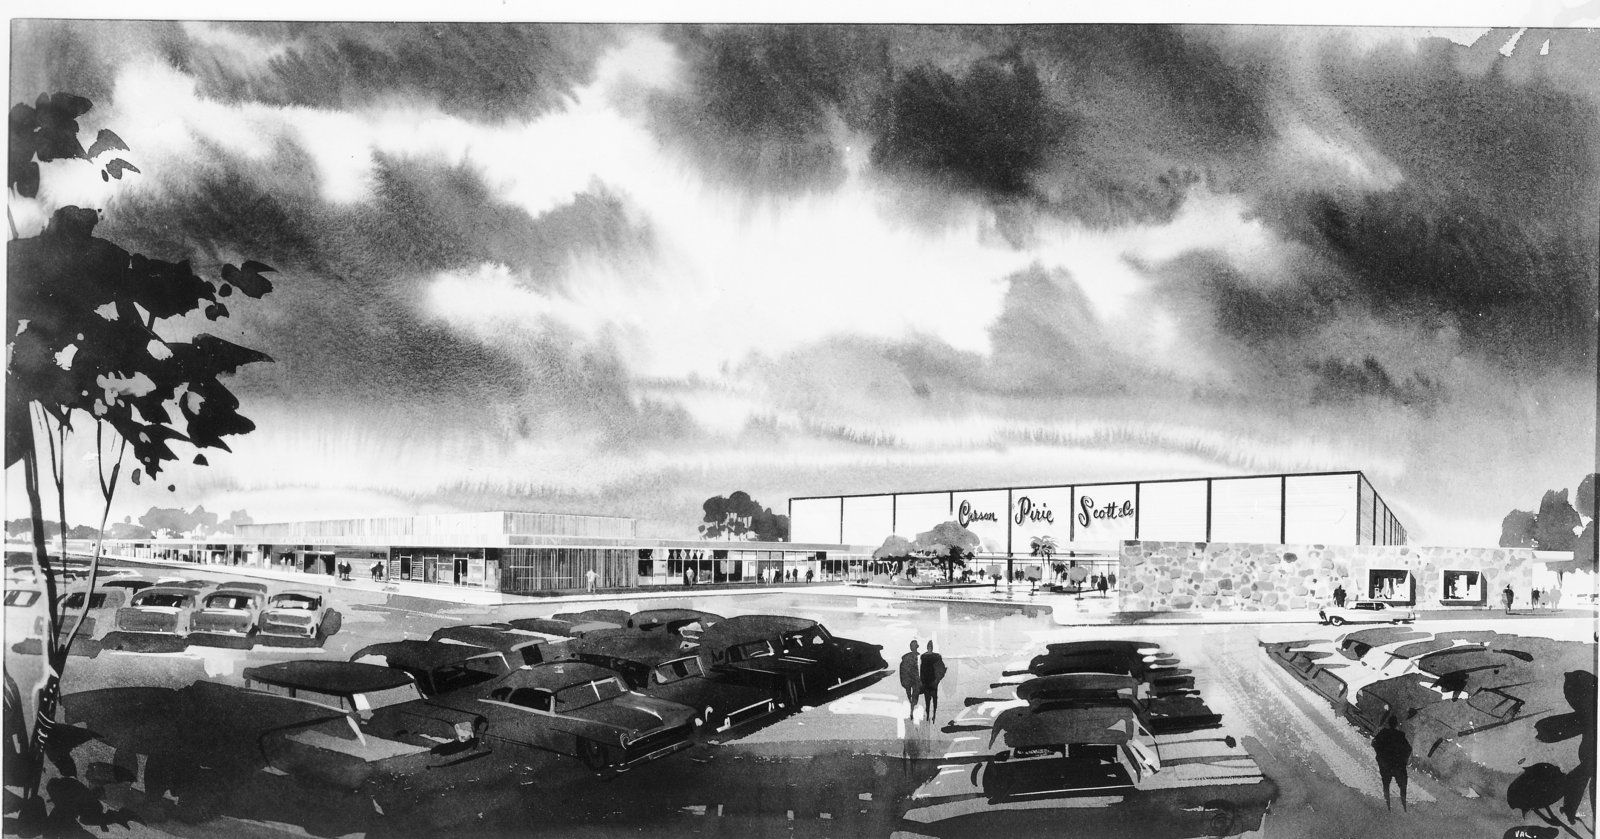 Black and white photograph of an artist's rendition of Carson Pirie Scott & Co. at Edens Plaza, Wilmette, about 1960